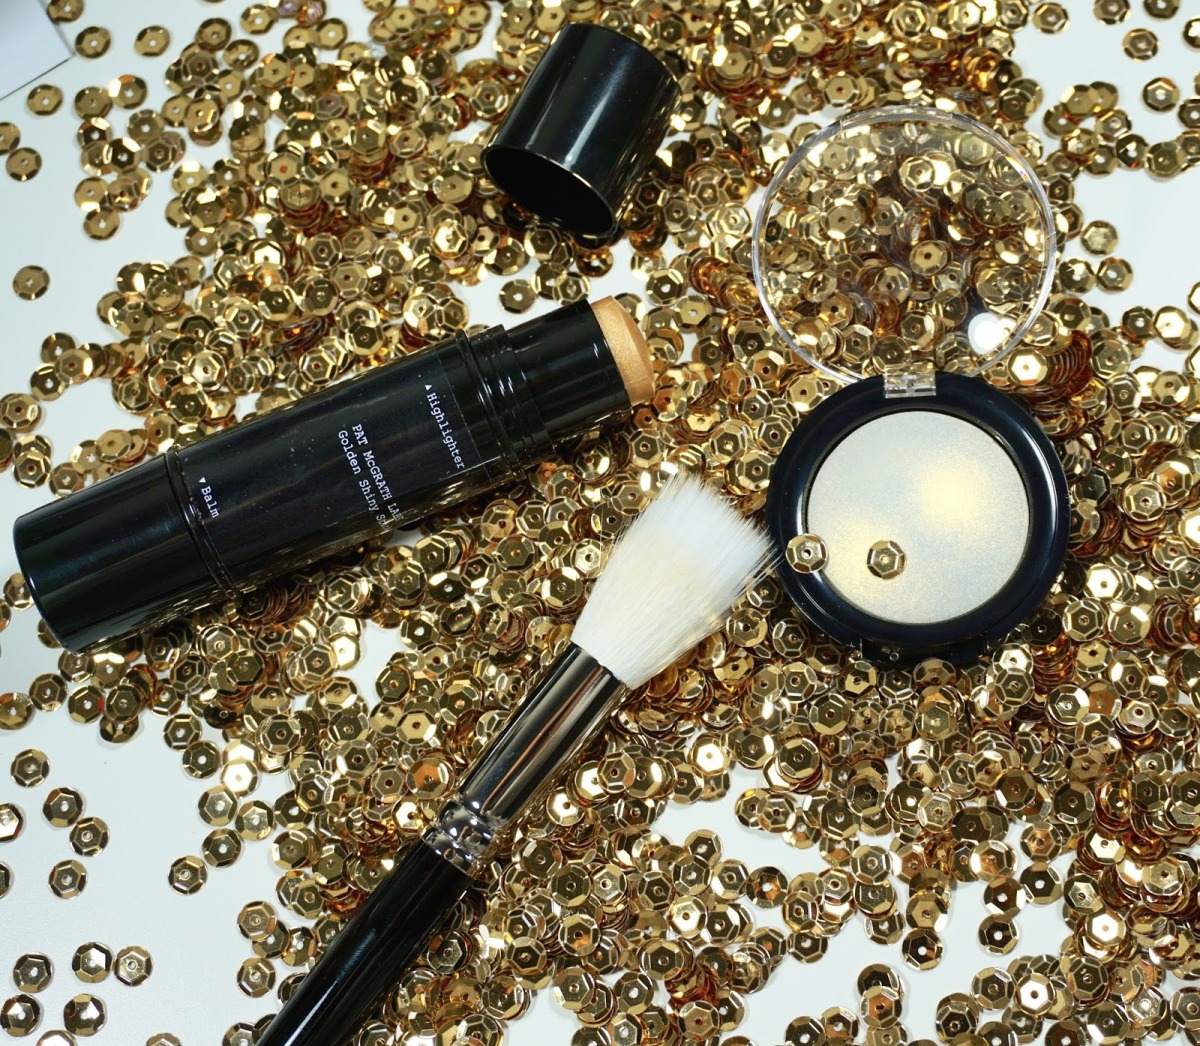 Beauty Review: Pat McGrath Labs Skin Fetish 003